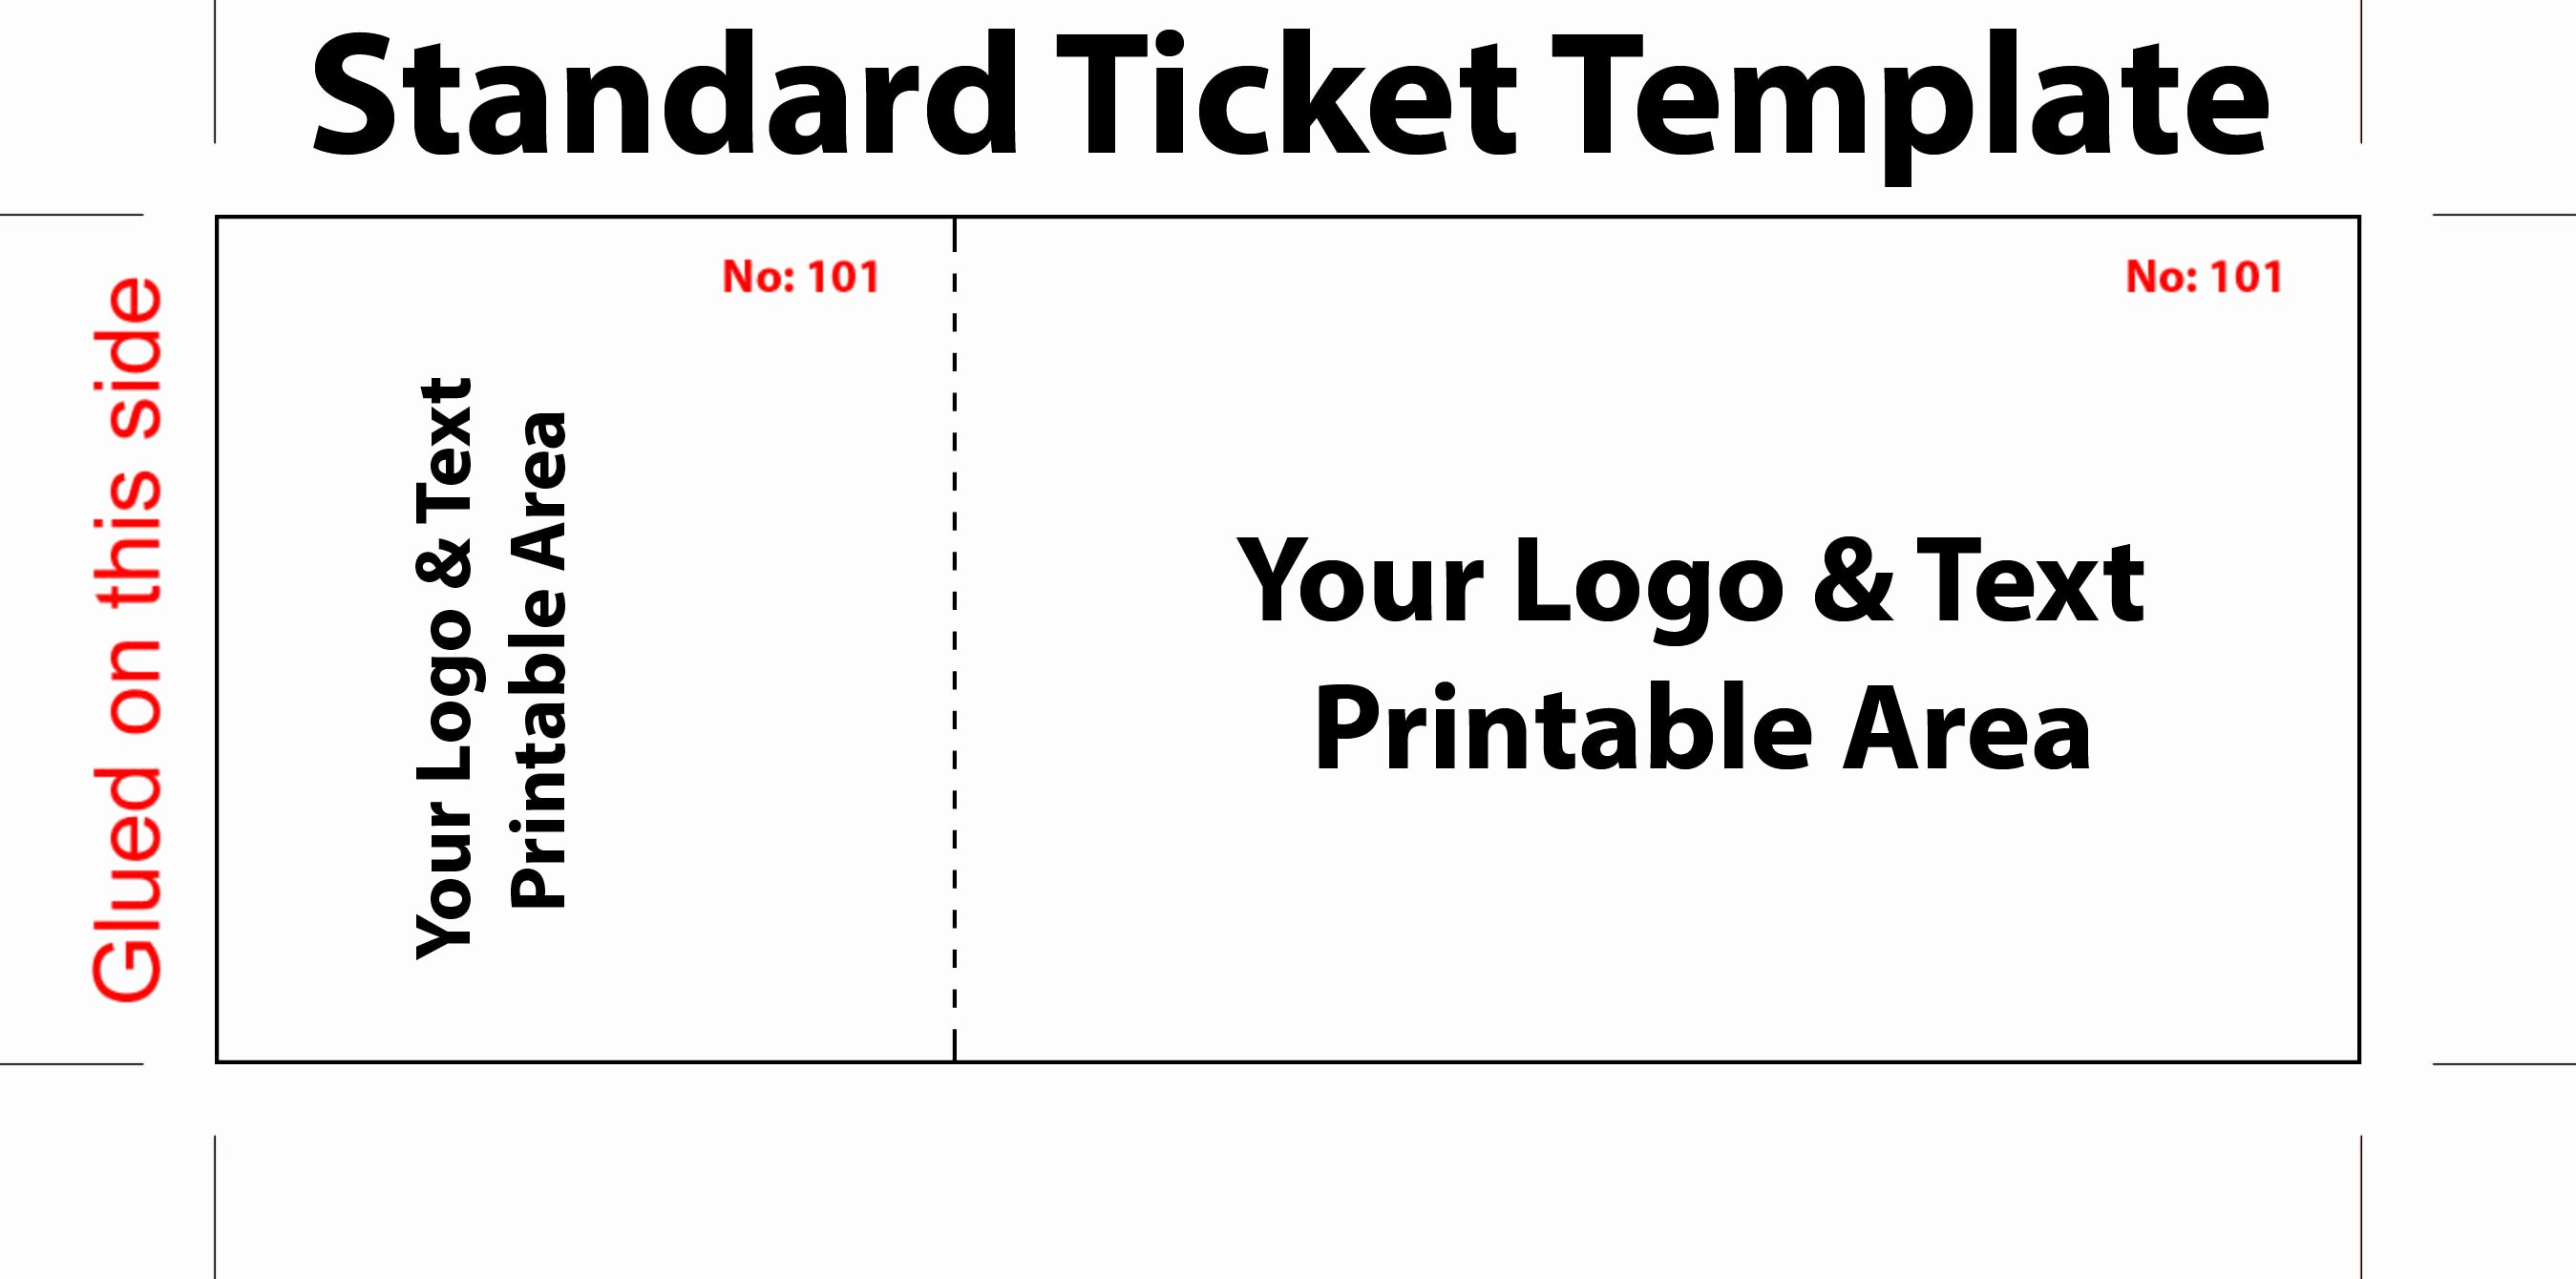 Free Editable Standard Ticket Template Example for Concert